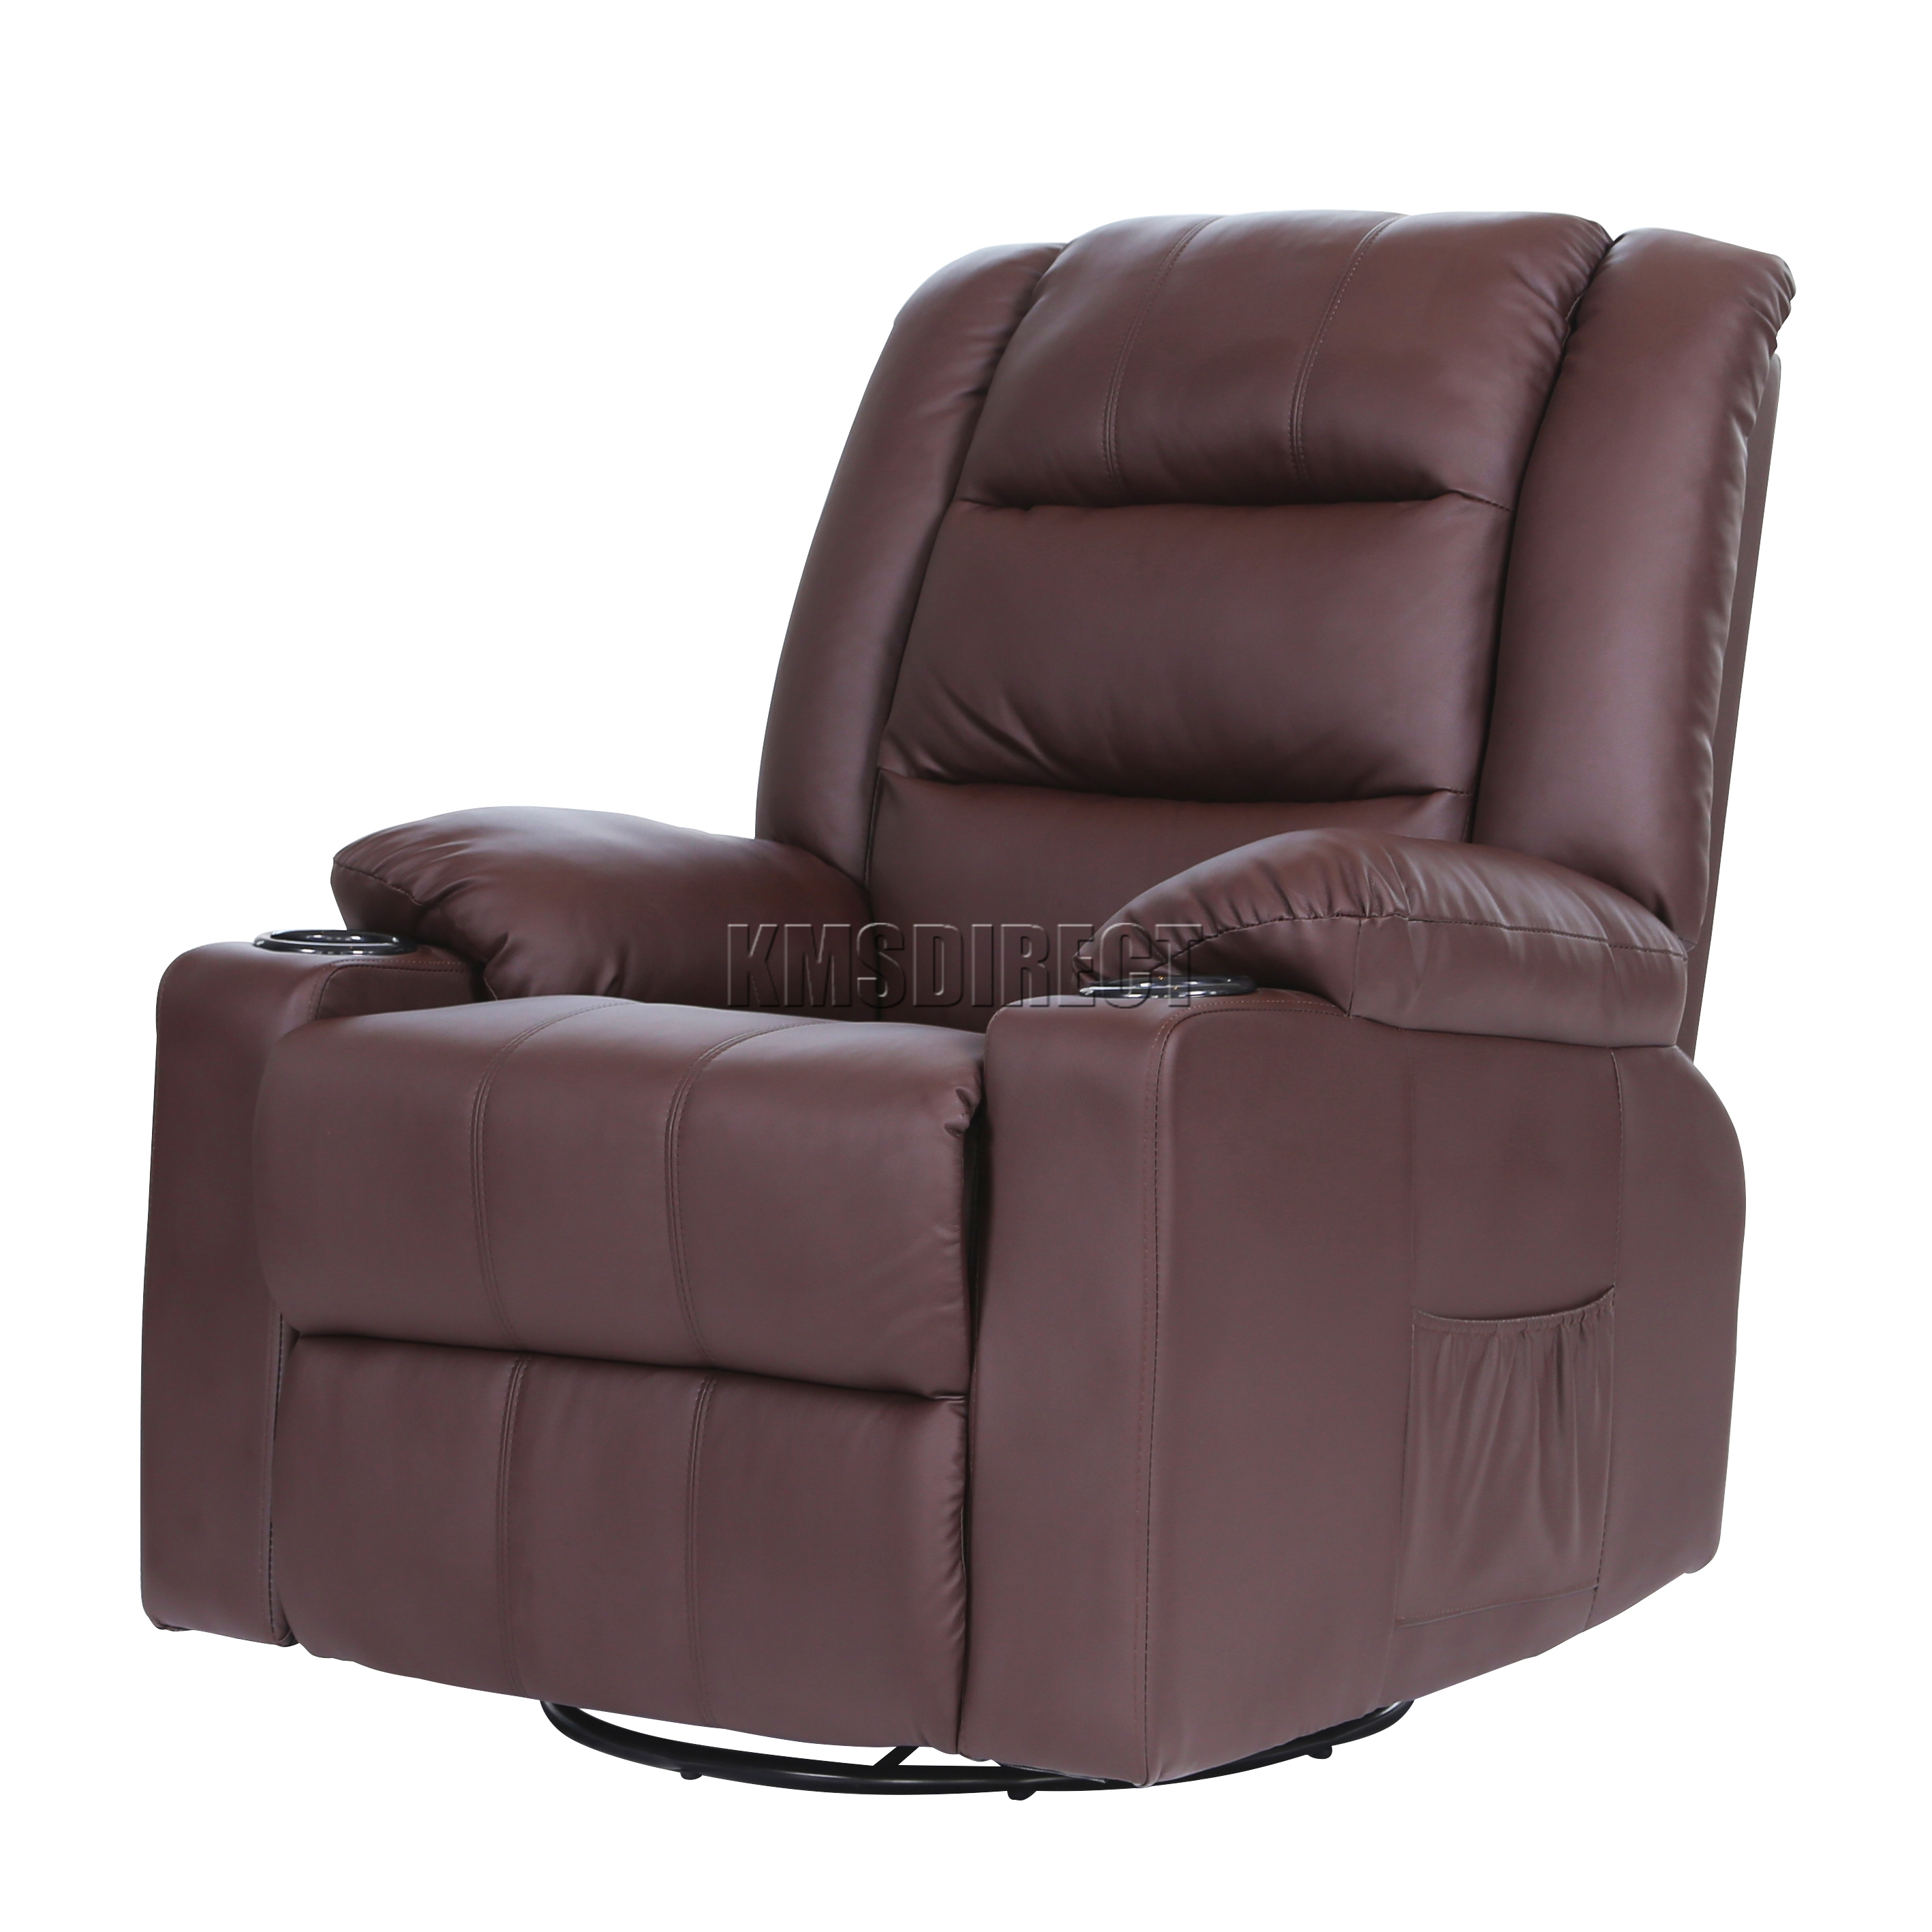 brown leather recliner sofa uk polish for sofas foxhunter massage cinema chair